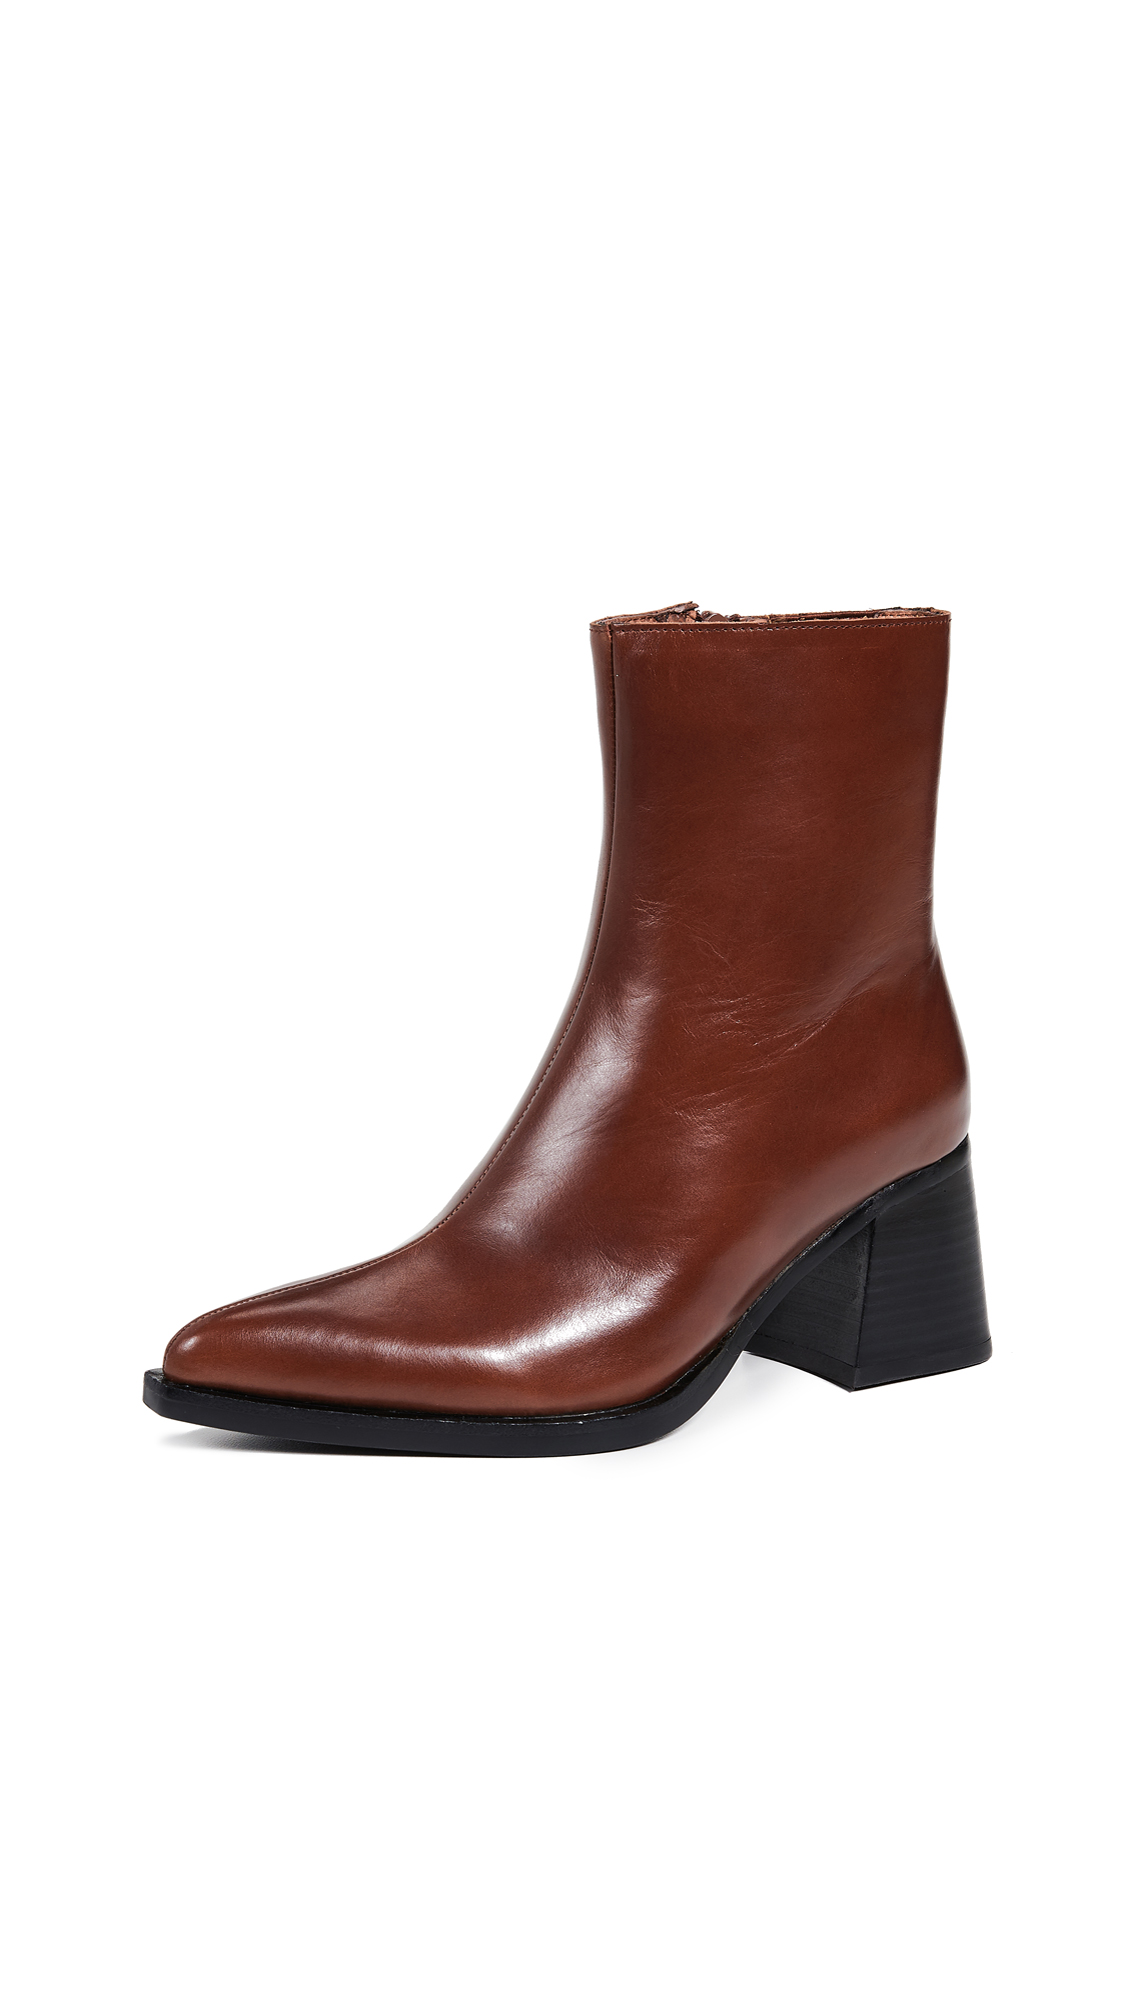 Jeffrey Campbell Hinge Block Heel Booties - Brown